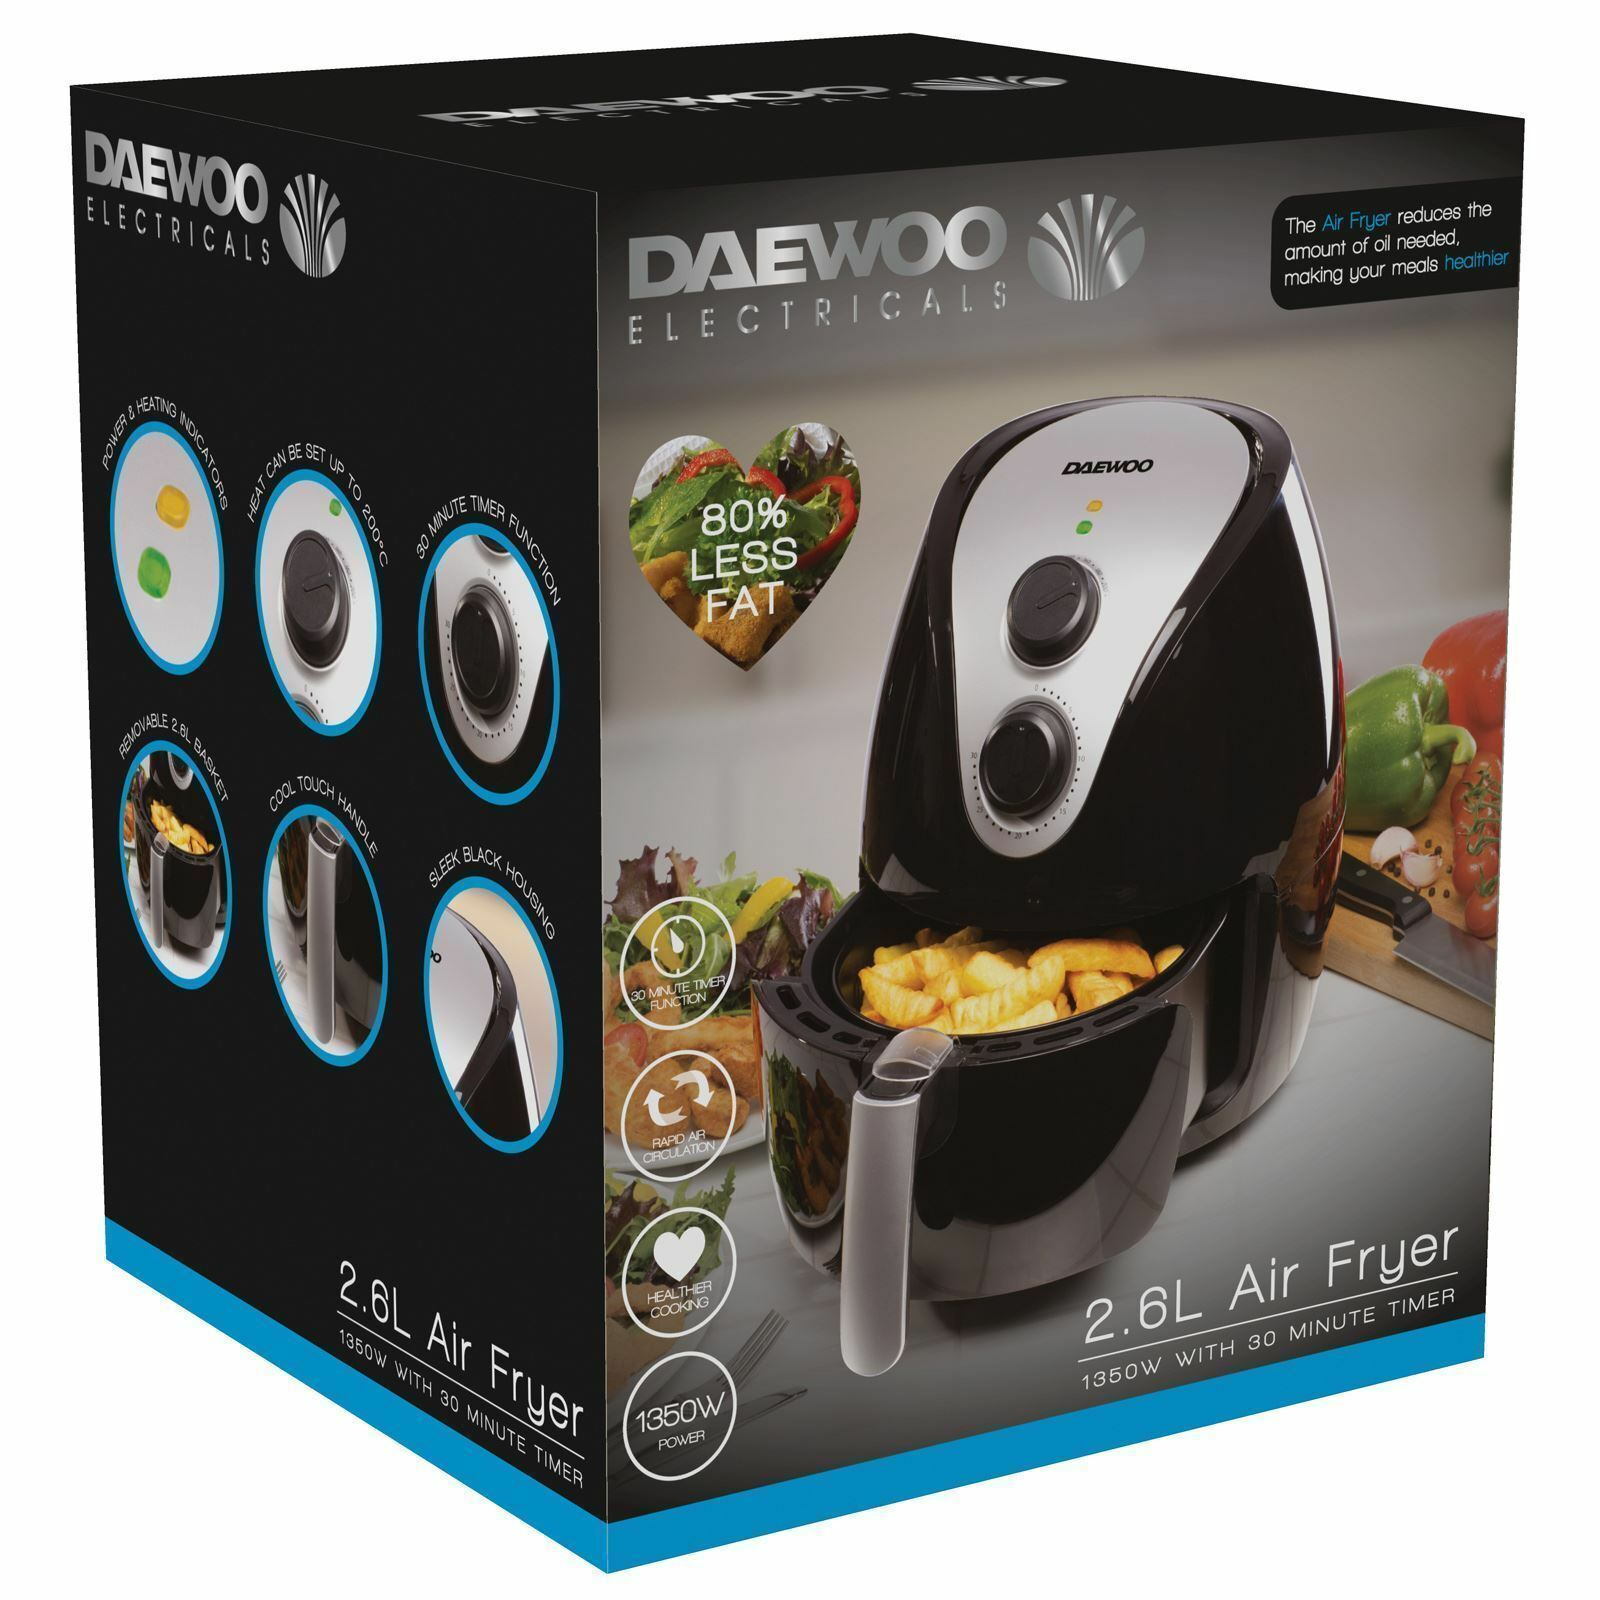 Daewoo SDA1241 1350W 2.6L Faible Fat Oil Libre Healthy Rapid Air Fryer with Timer